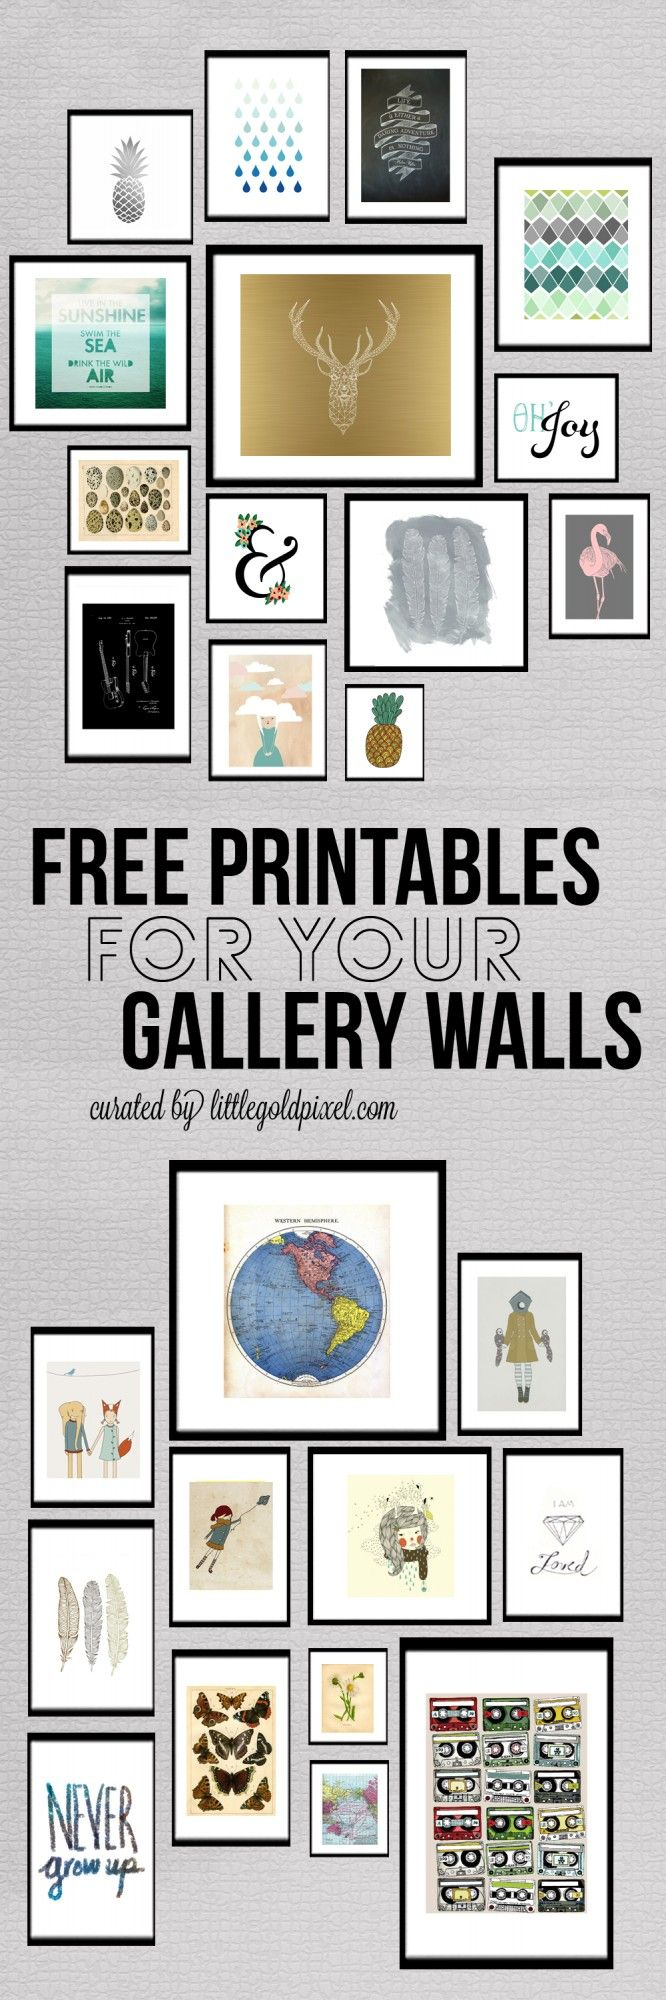 Roundup free printables for gallery walls gallery wall free a roundup of fun trendy and beautiful free printables for gallery walls from flamingoes amipublicfo Gallery